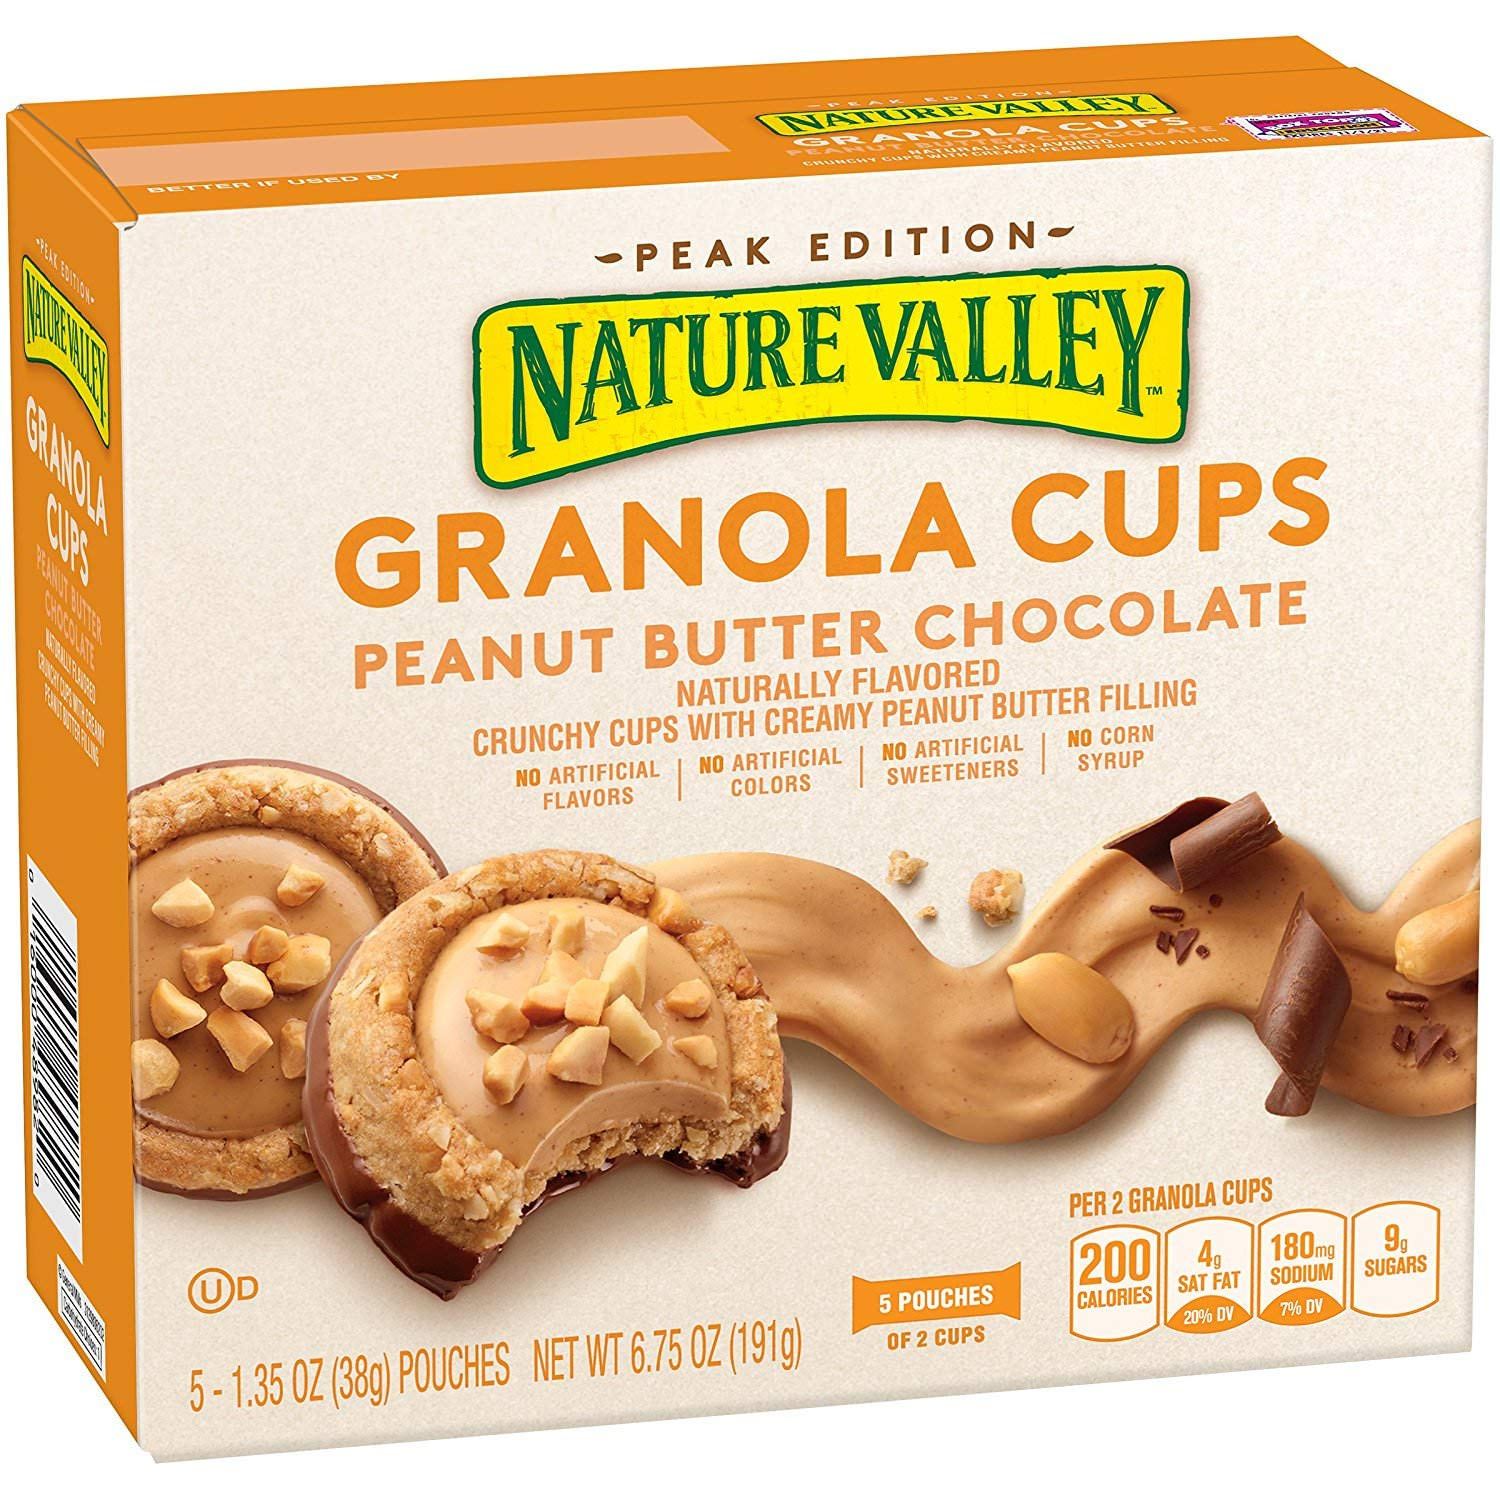 Nature Valley Peak Edition Granola Cups, Peanut Butter, 1.35 Oz, 5 Bars (6 Boxes)